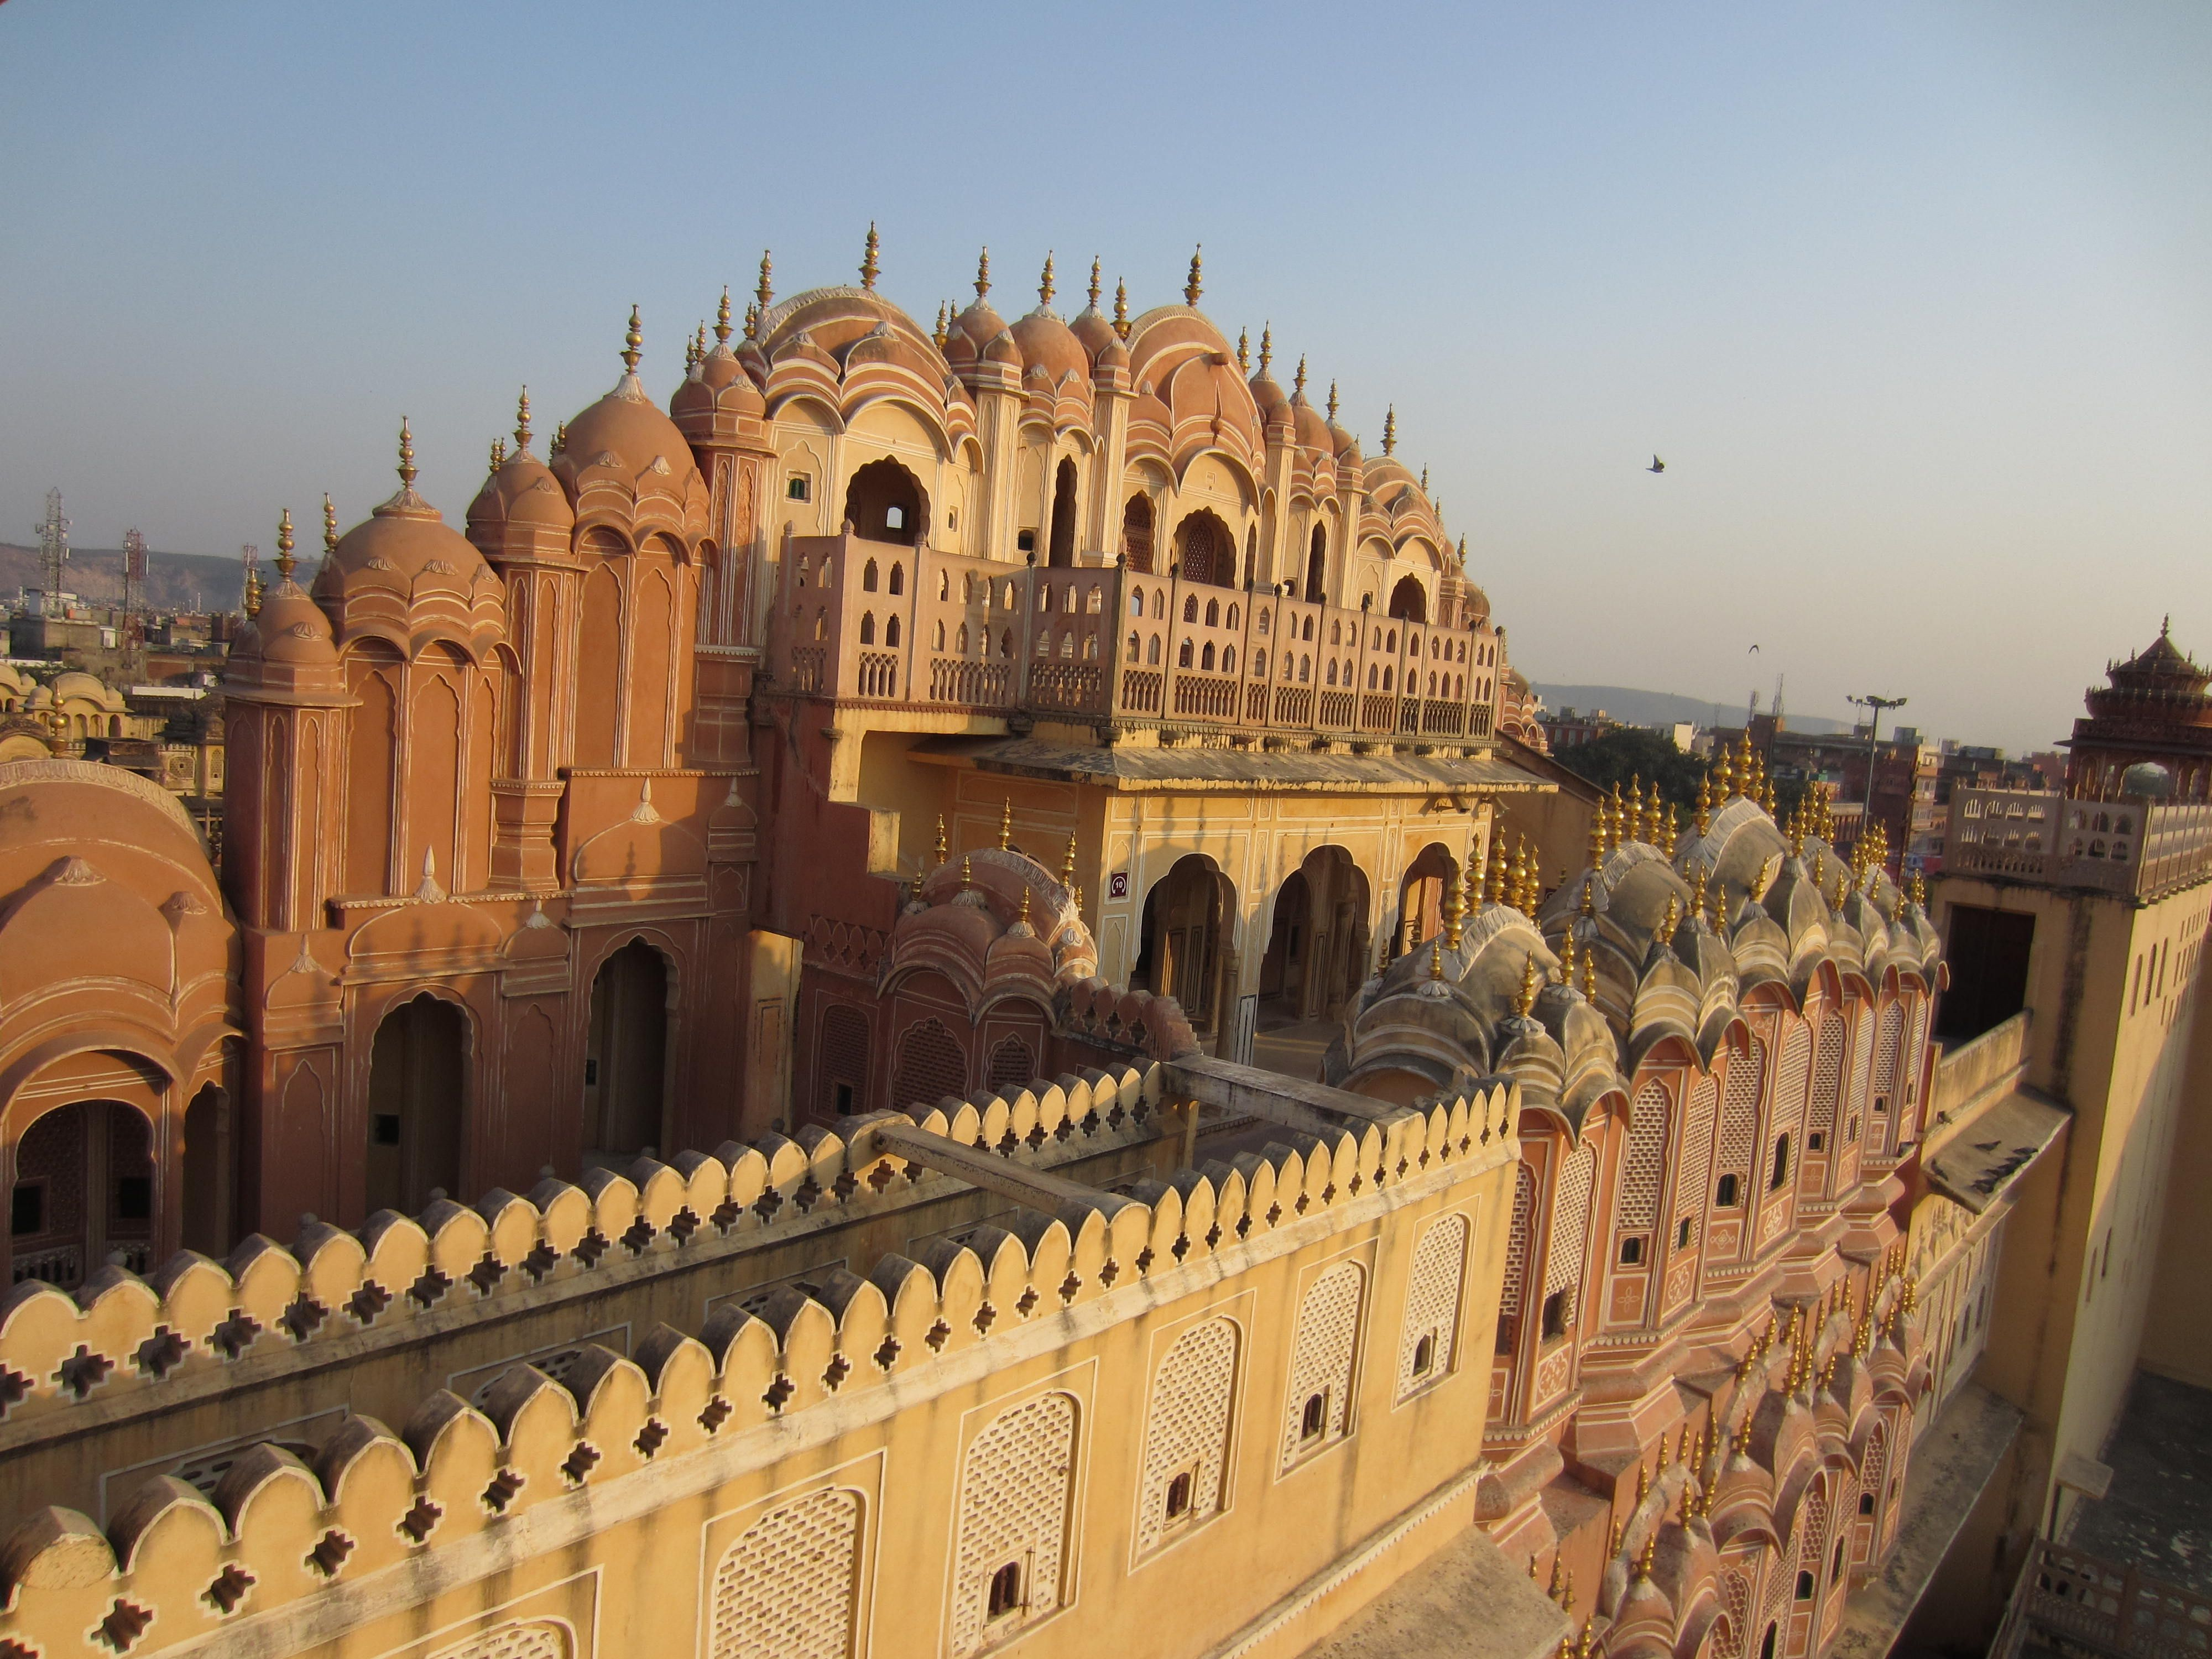 Hawa Mahal (The Palace of the Breeze), located in the